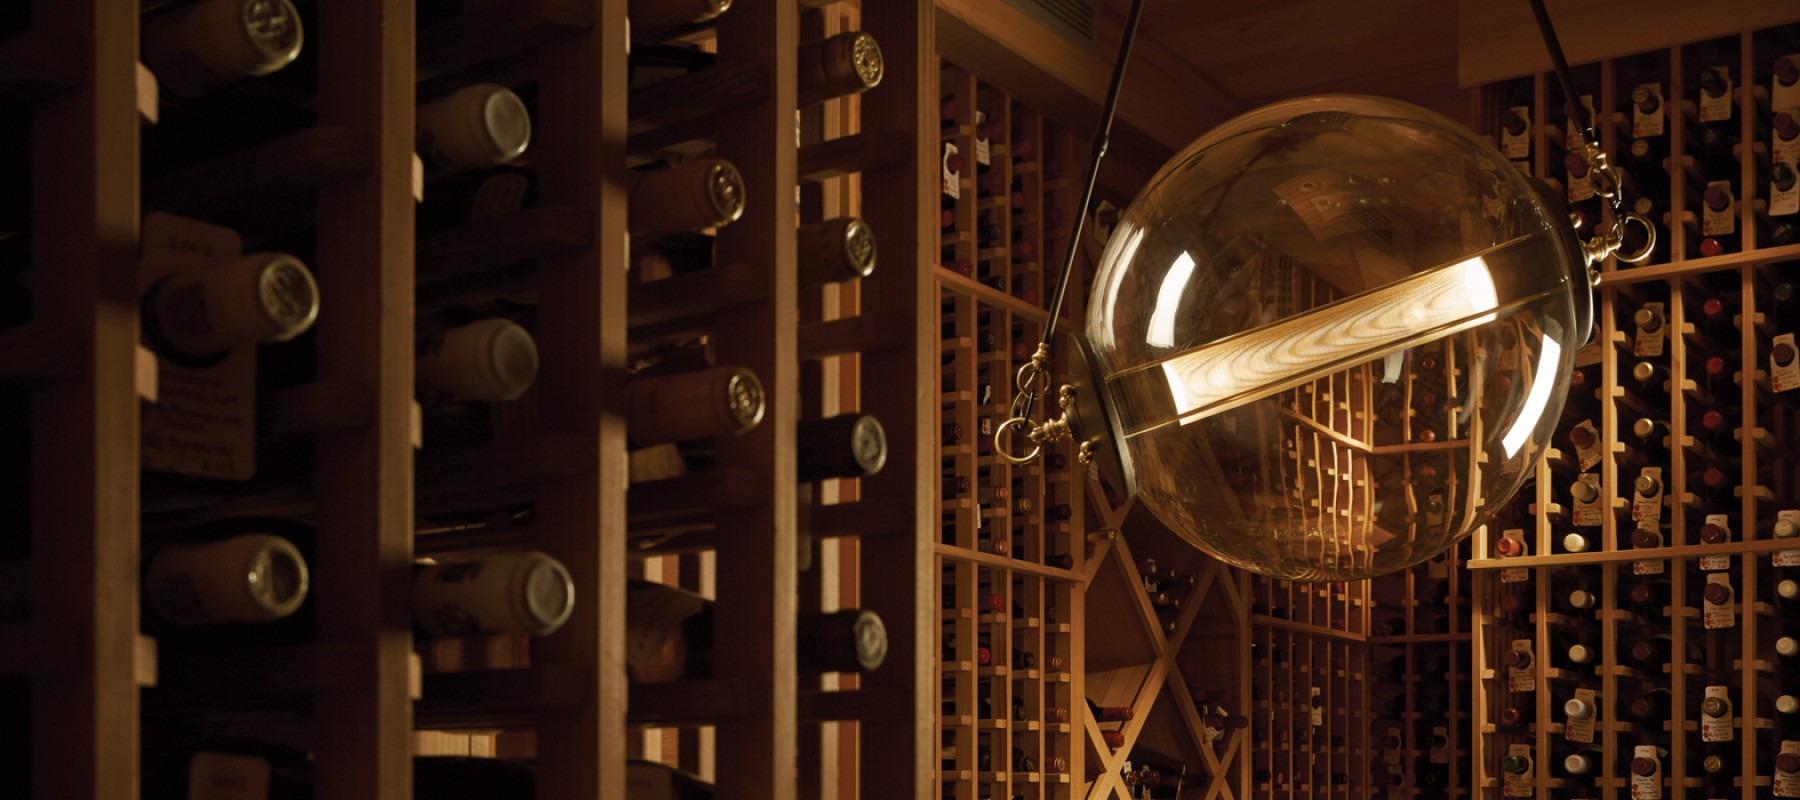 Introducing the Otto Sphere Pendant hung in an industrial setting in a wine cellar